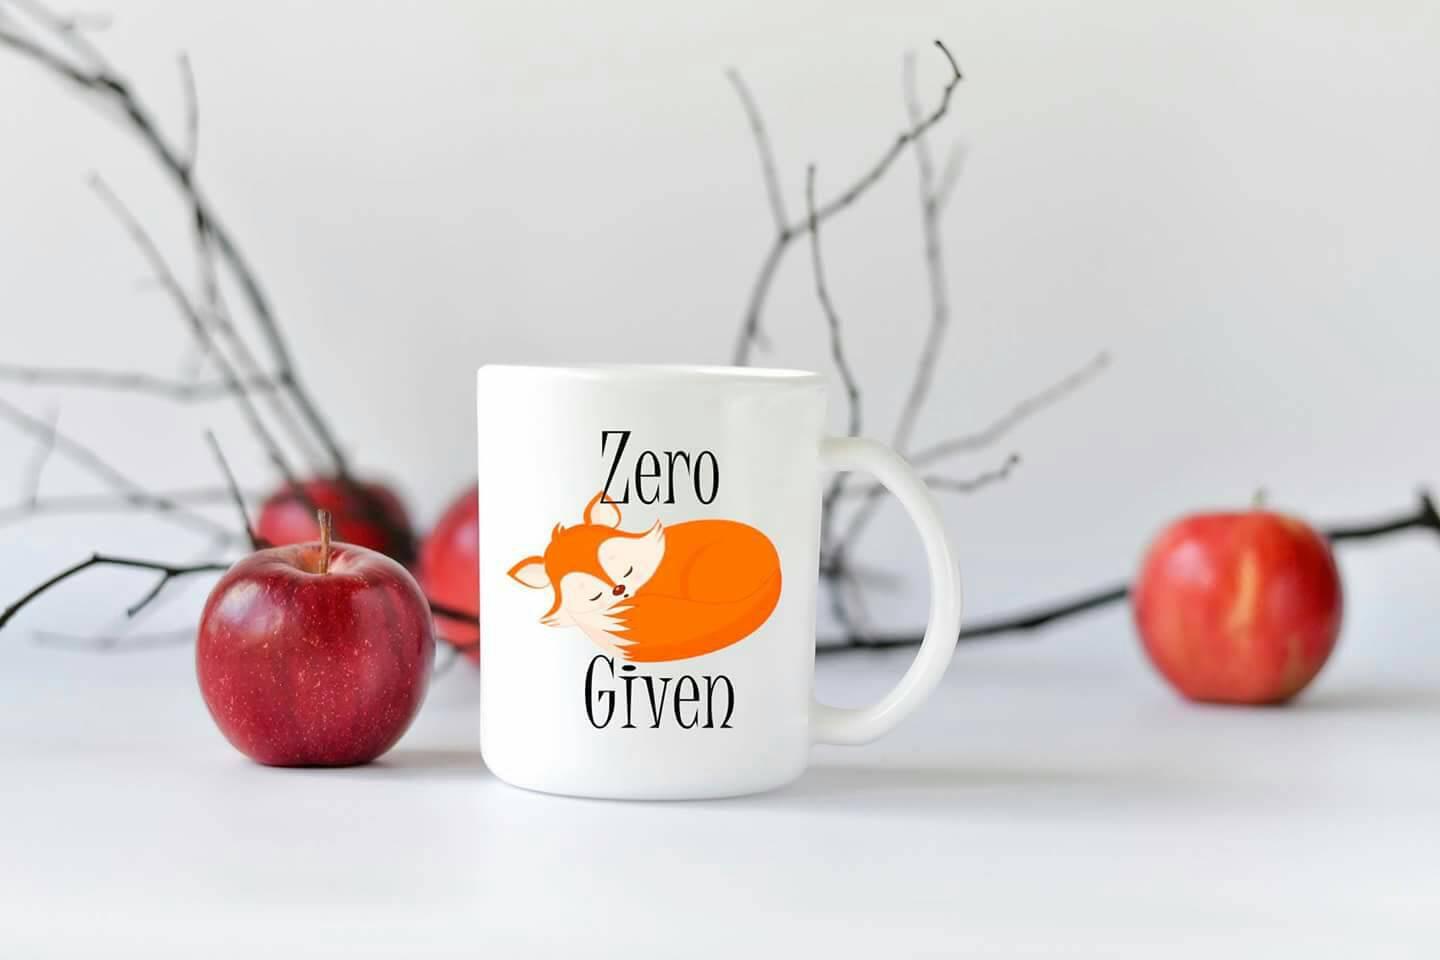 Zero Fox Given - Christmas Gift - Coffee Mug - Funny Coffee  Mug - Coffee Cup - Mug - Cute Mug - Personalized Mug - Fox - zero fox given mug